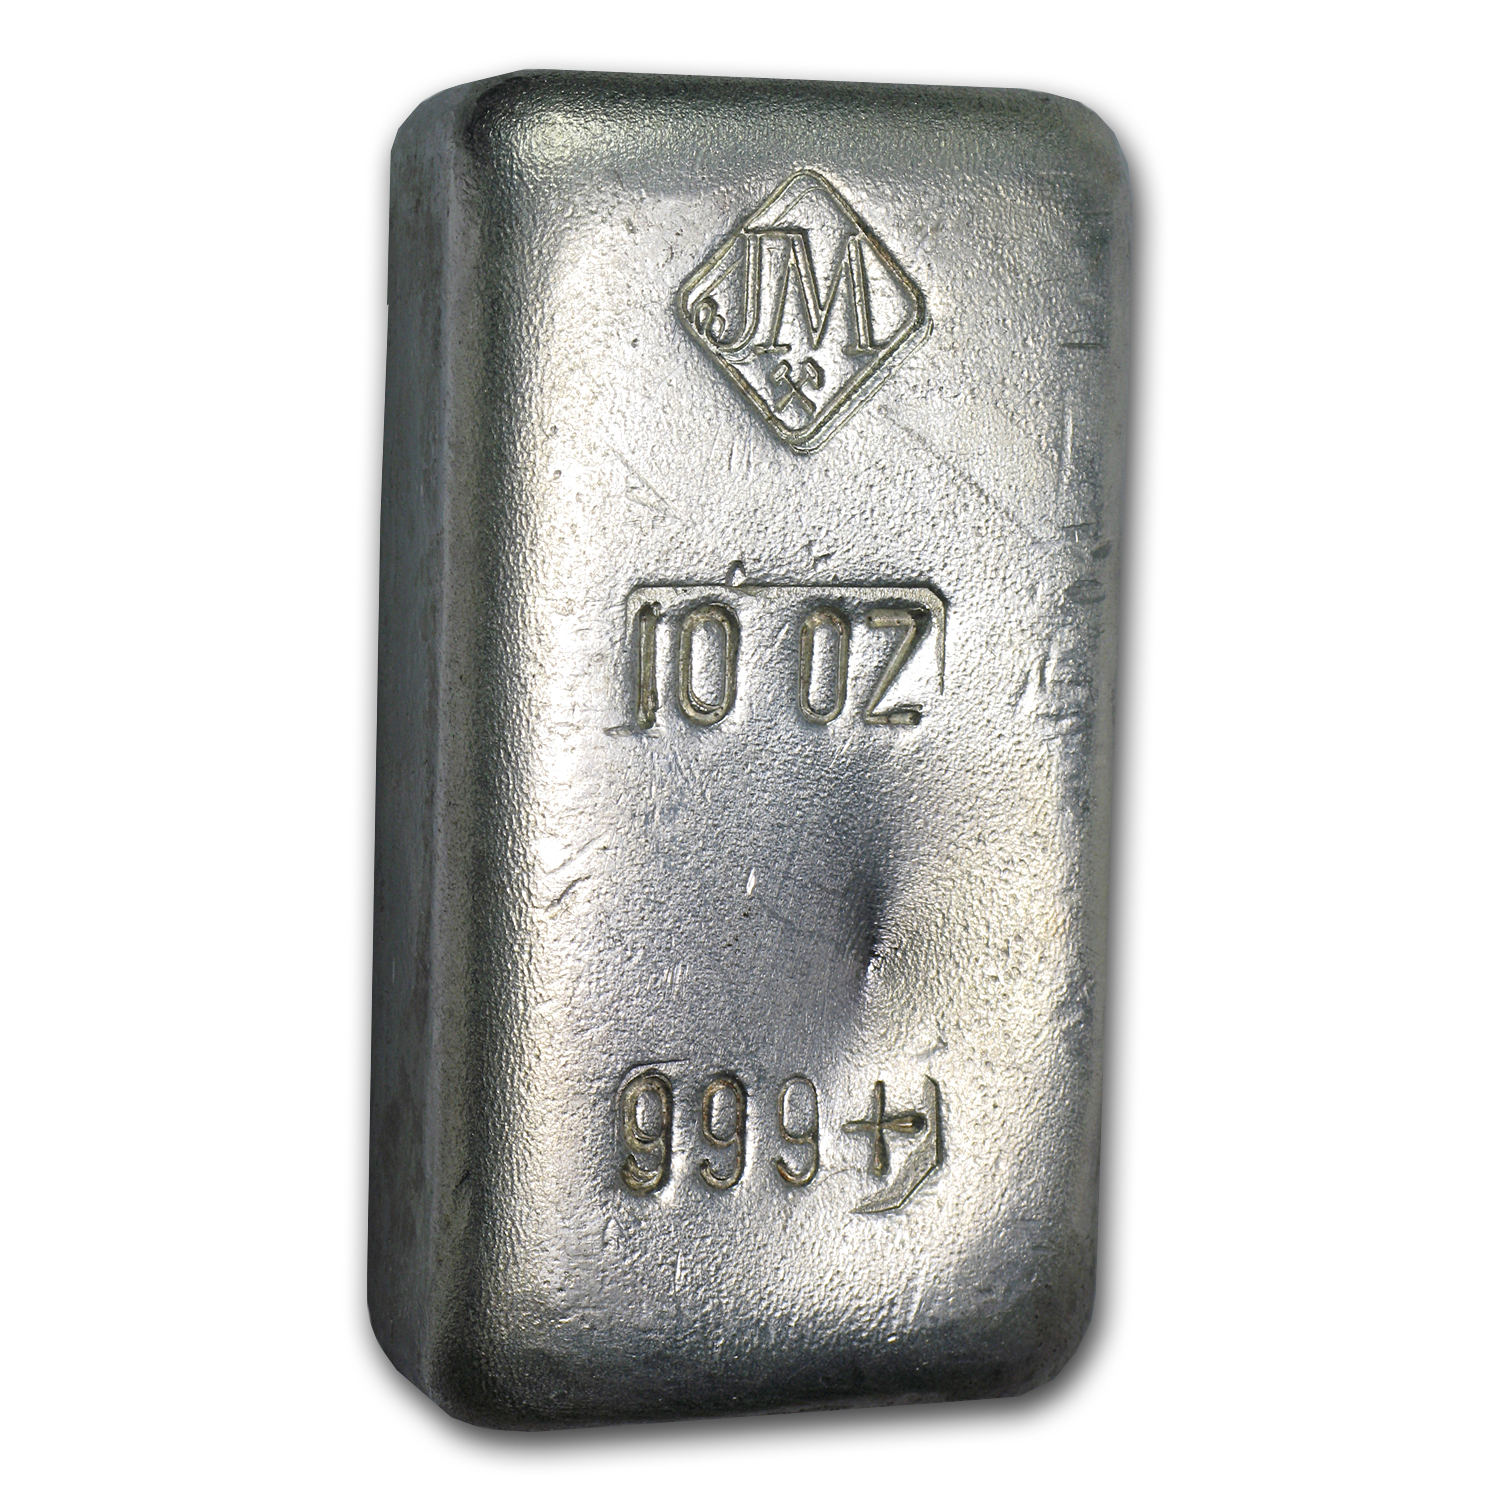 10 oz Silver Bars - Johnson Matthey (Poured)